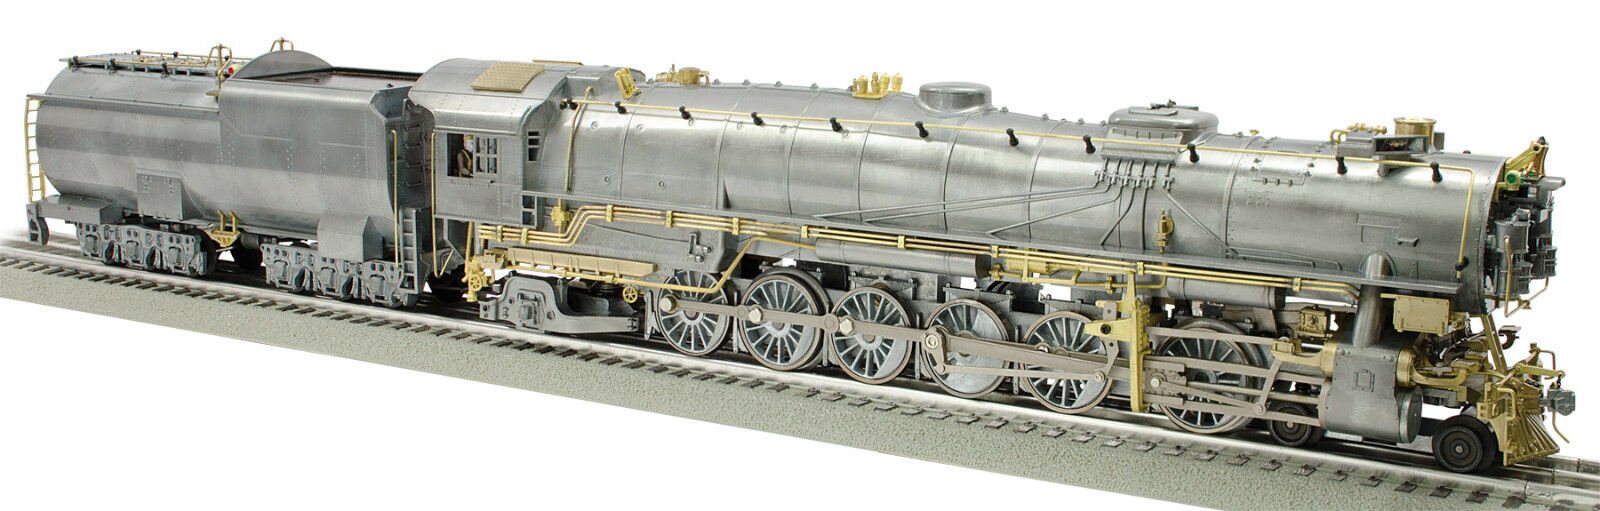 LIONEL 6-11336 PILOT EM-1    LEGACY Scale 2-8-8-4  Steam Loco  NEW SEALED SEE NOTE b32656